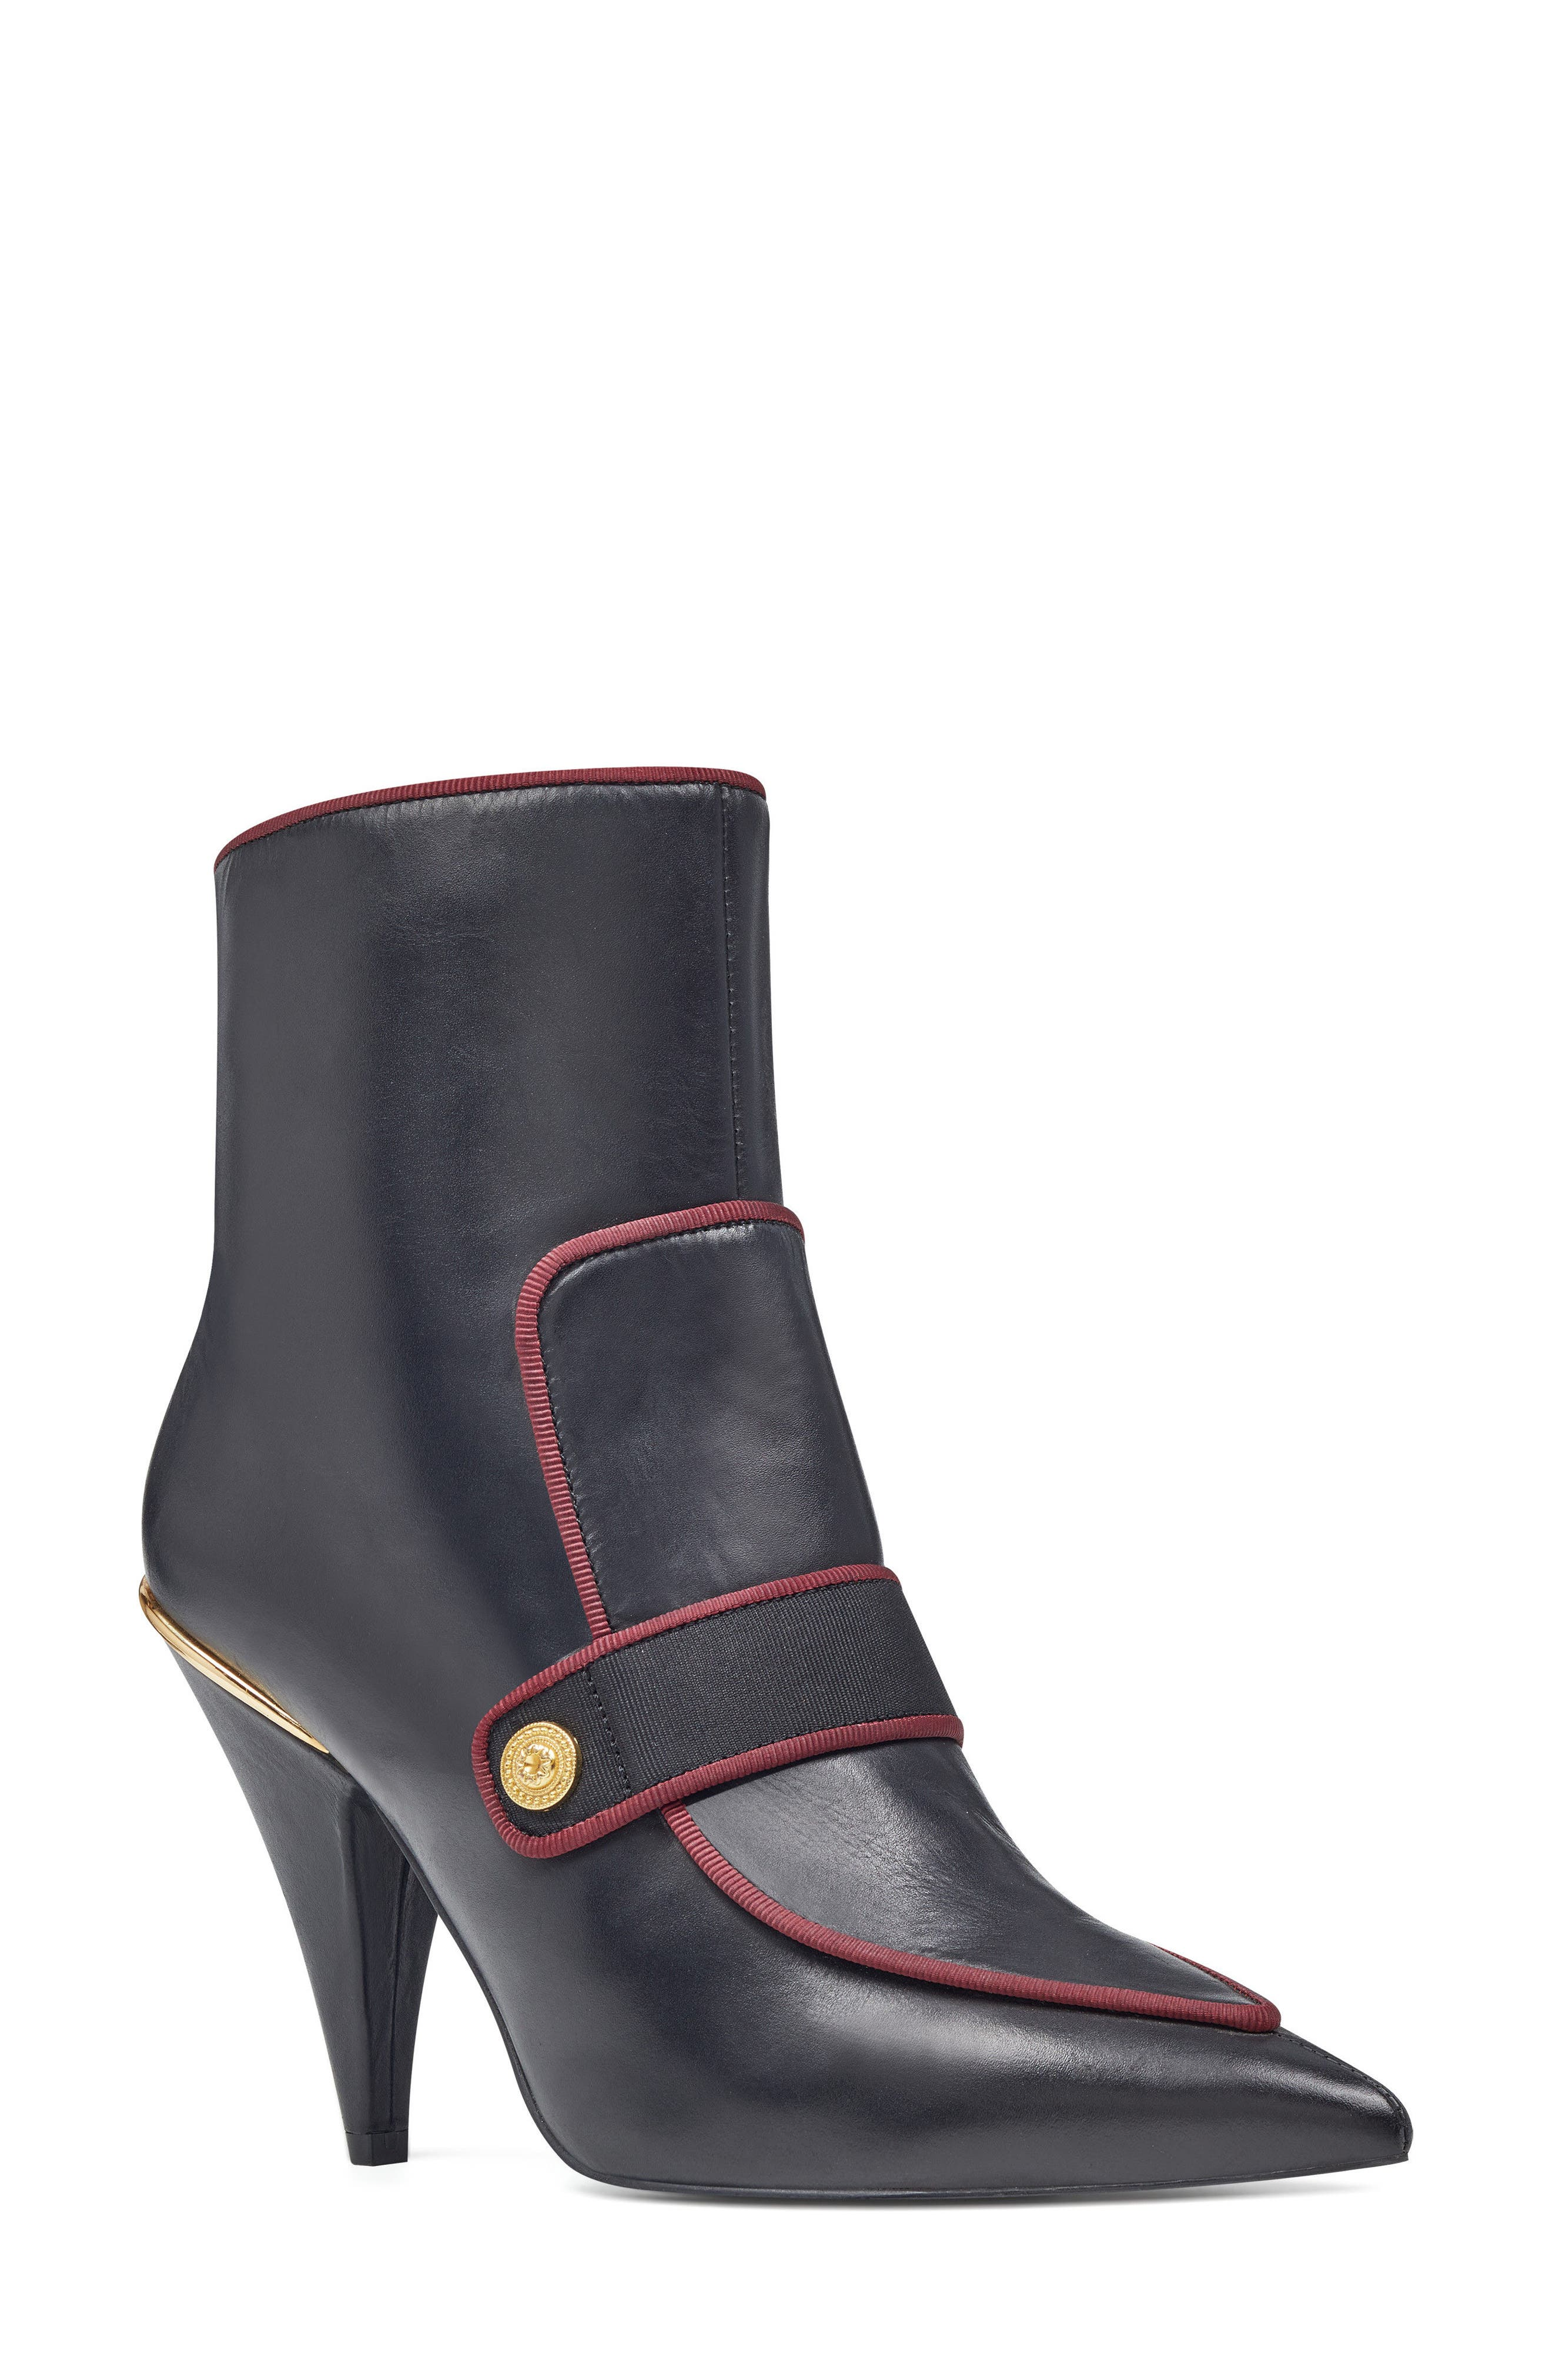 Westham Pointy Toe Bootie,                         Main,                         color, Black/ Wine Leather